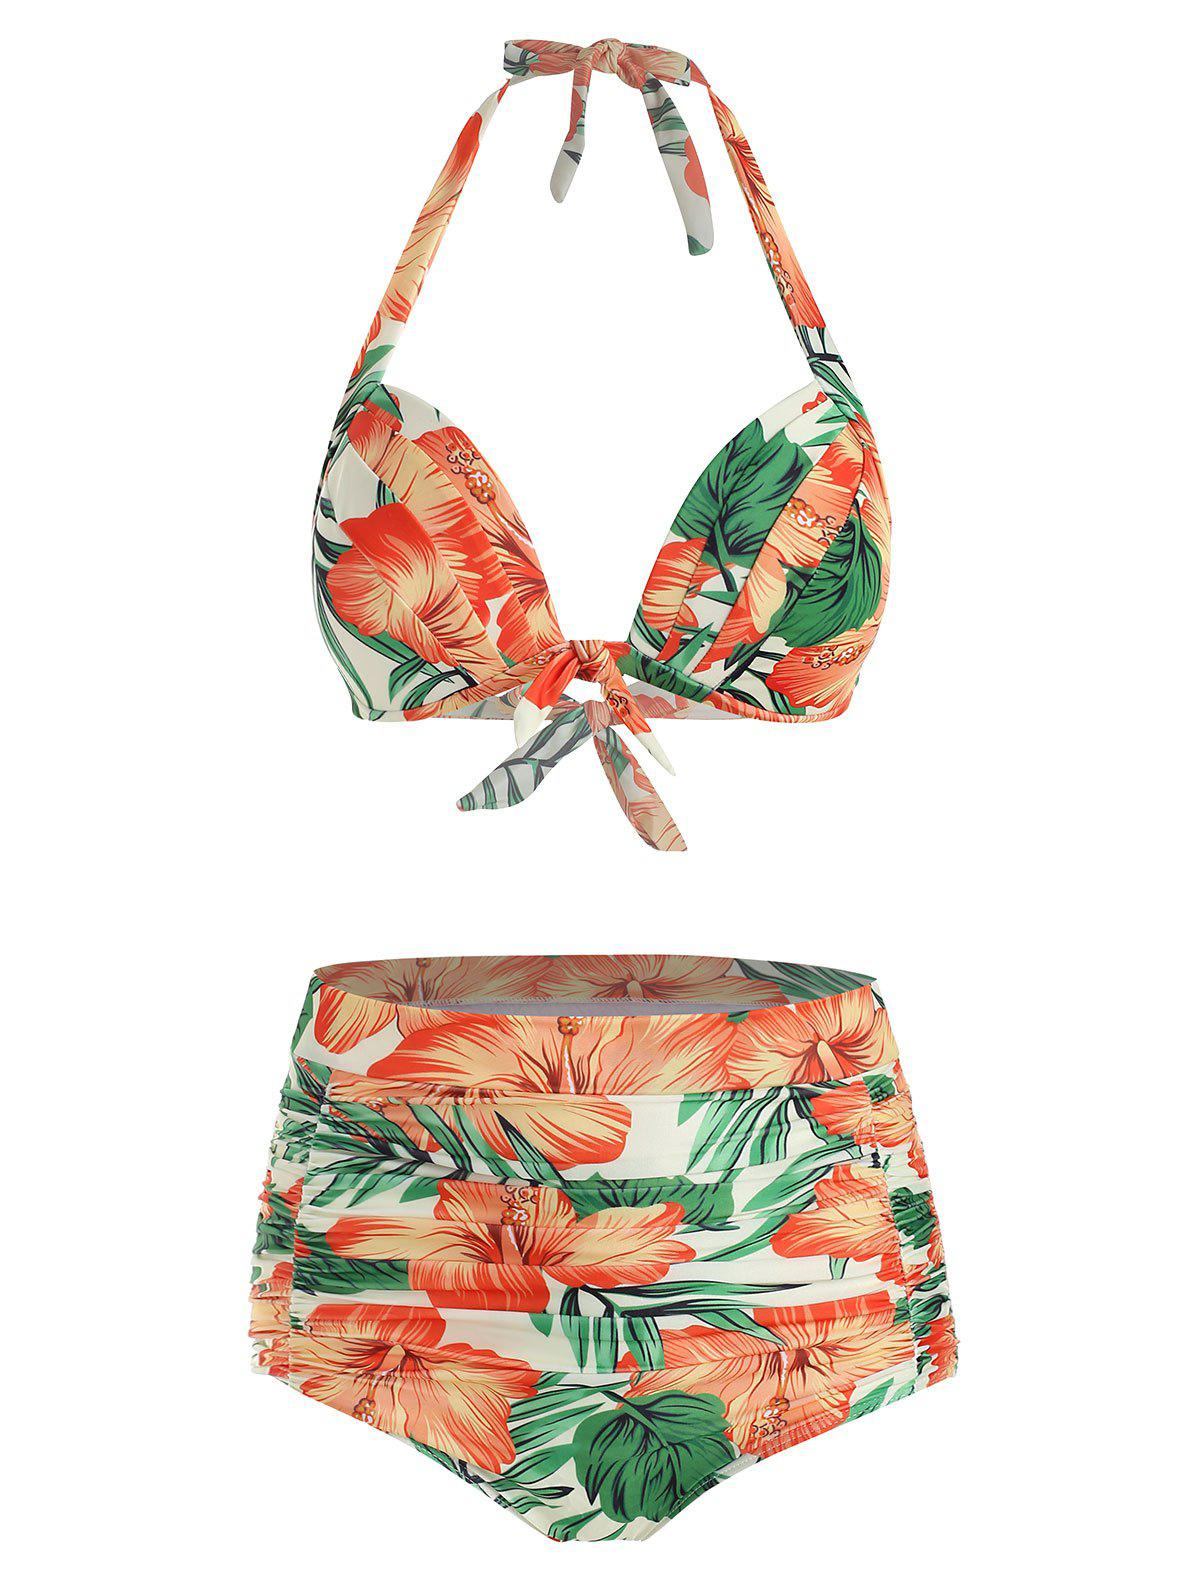 Fashion Floral Print Knotted Halter Bikini Swimsuit